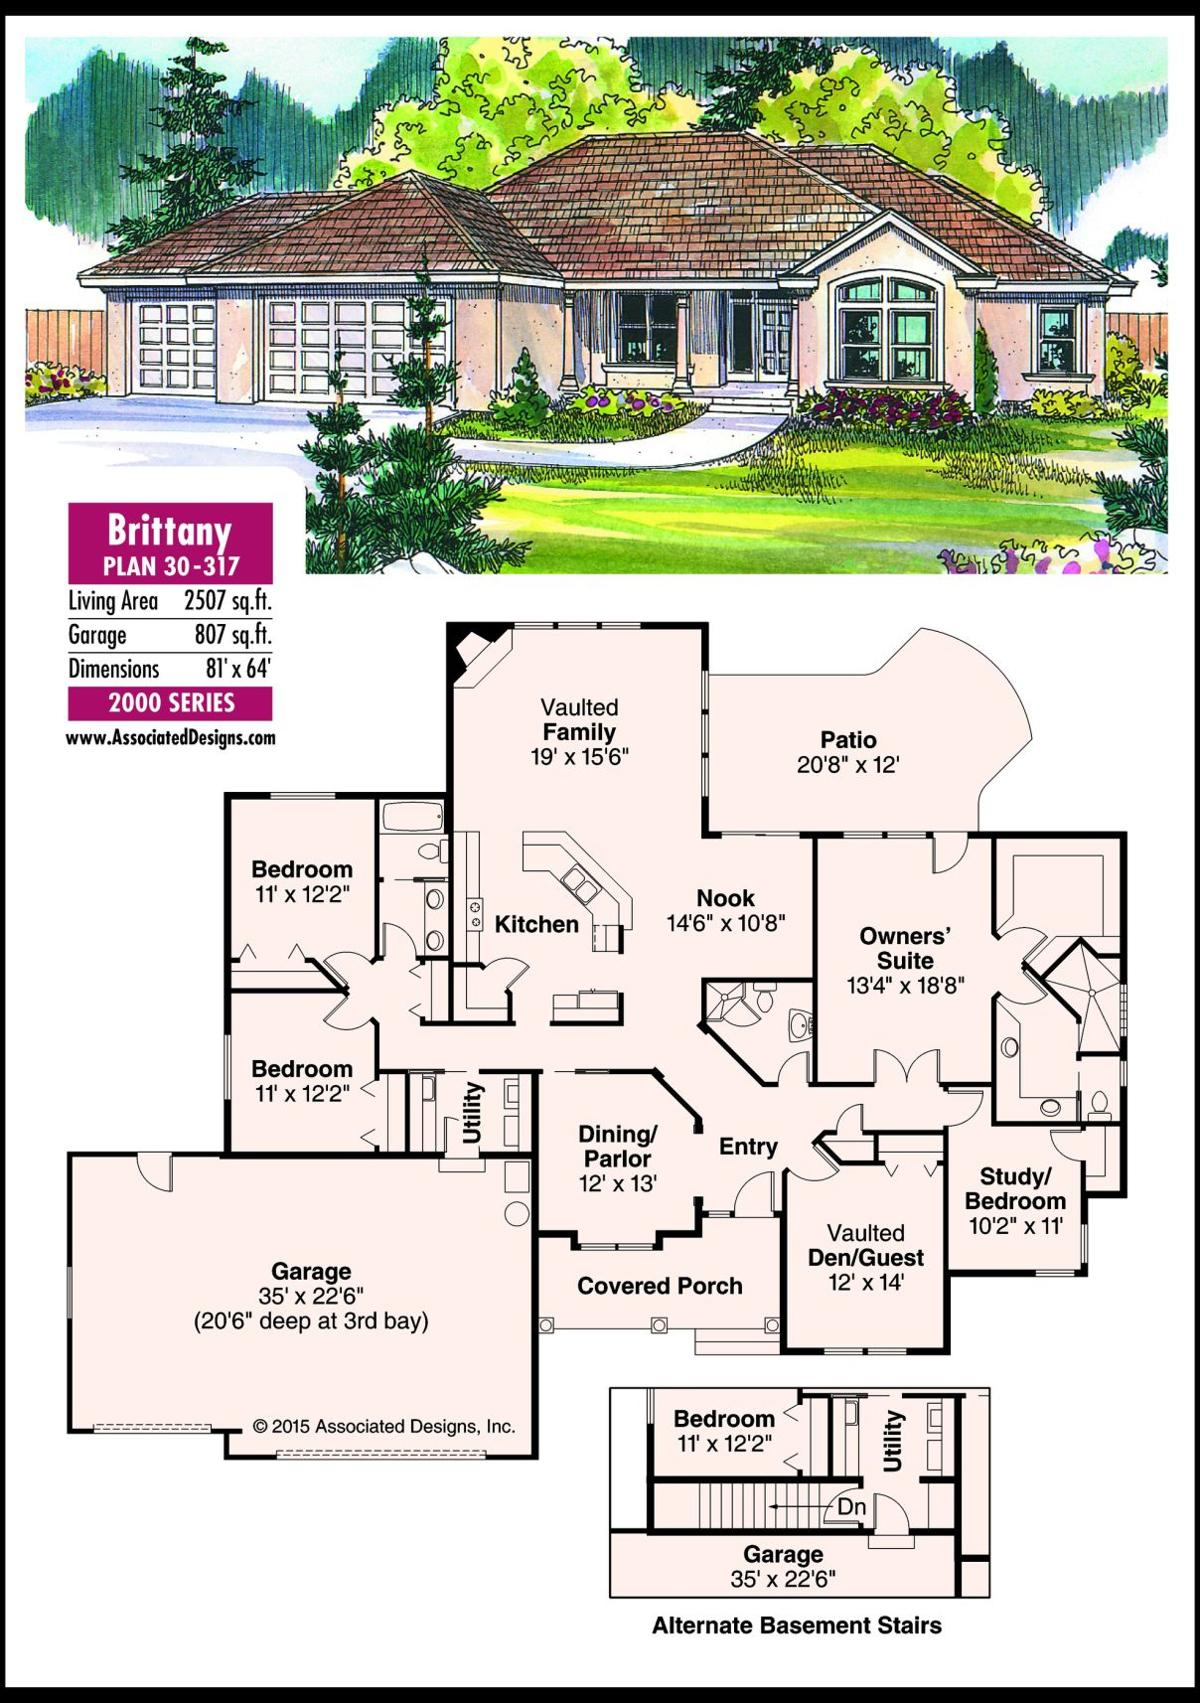 This week's house plan Brittany 30-317